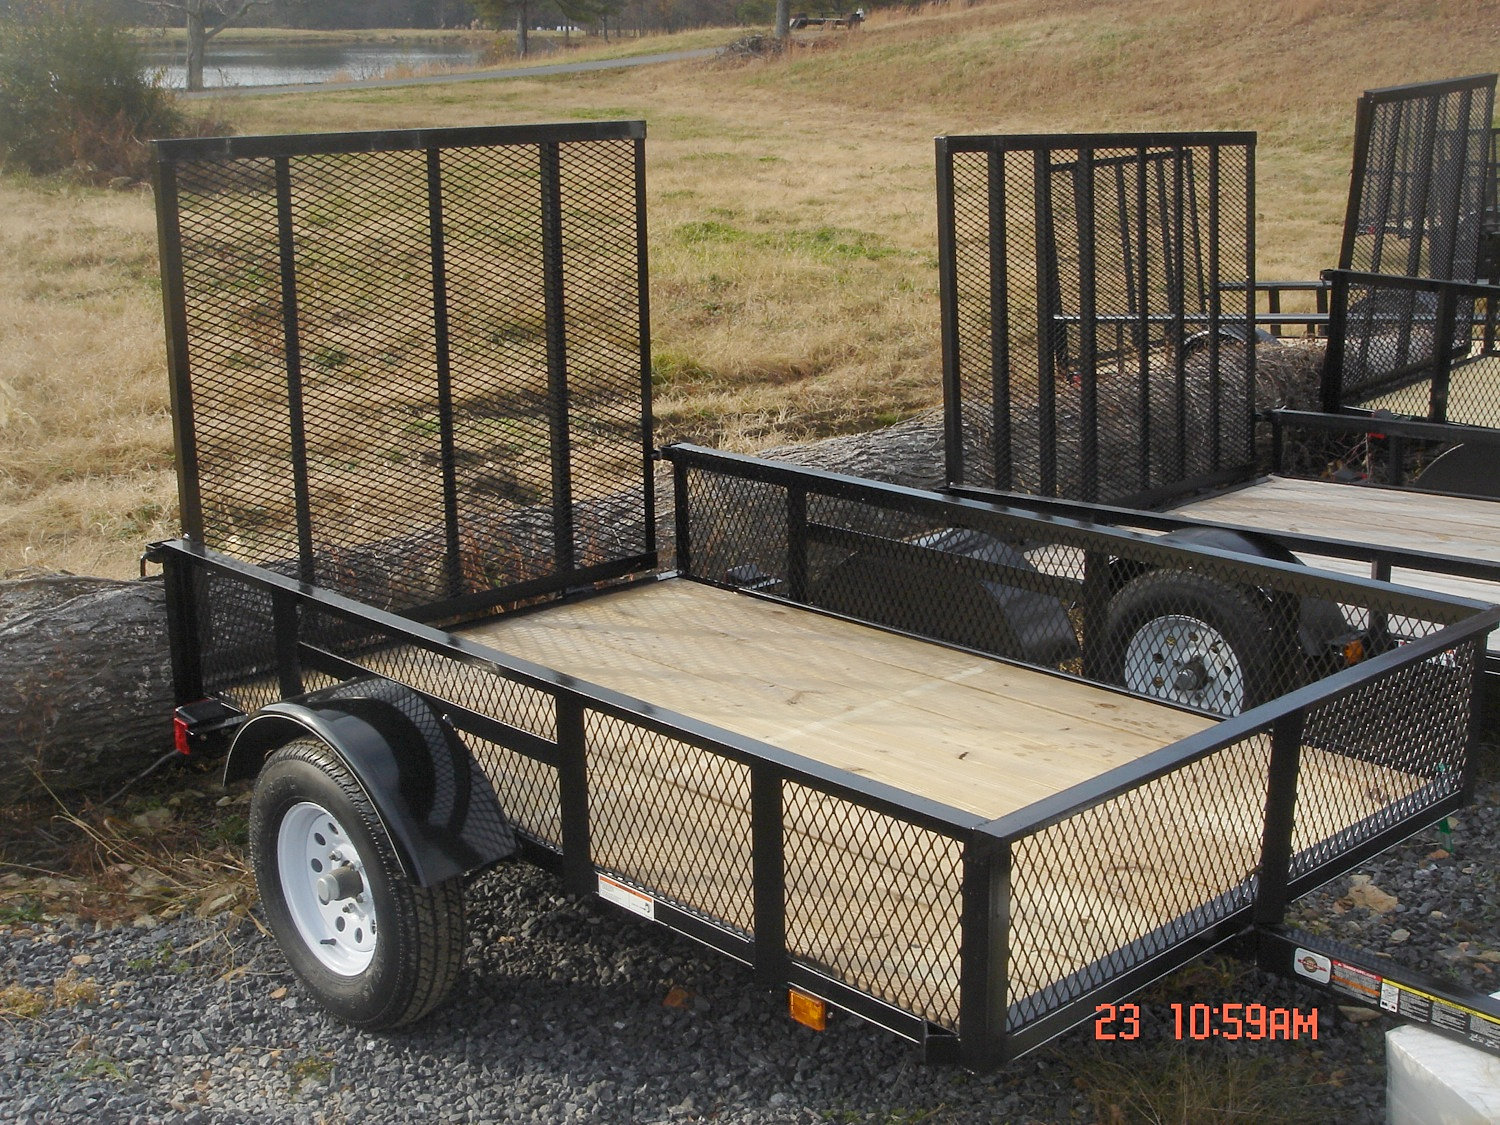 Reed reed sales farming equipment chatsworth georgia for Wood floor utility trailer